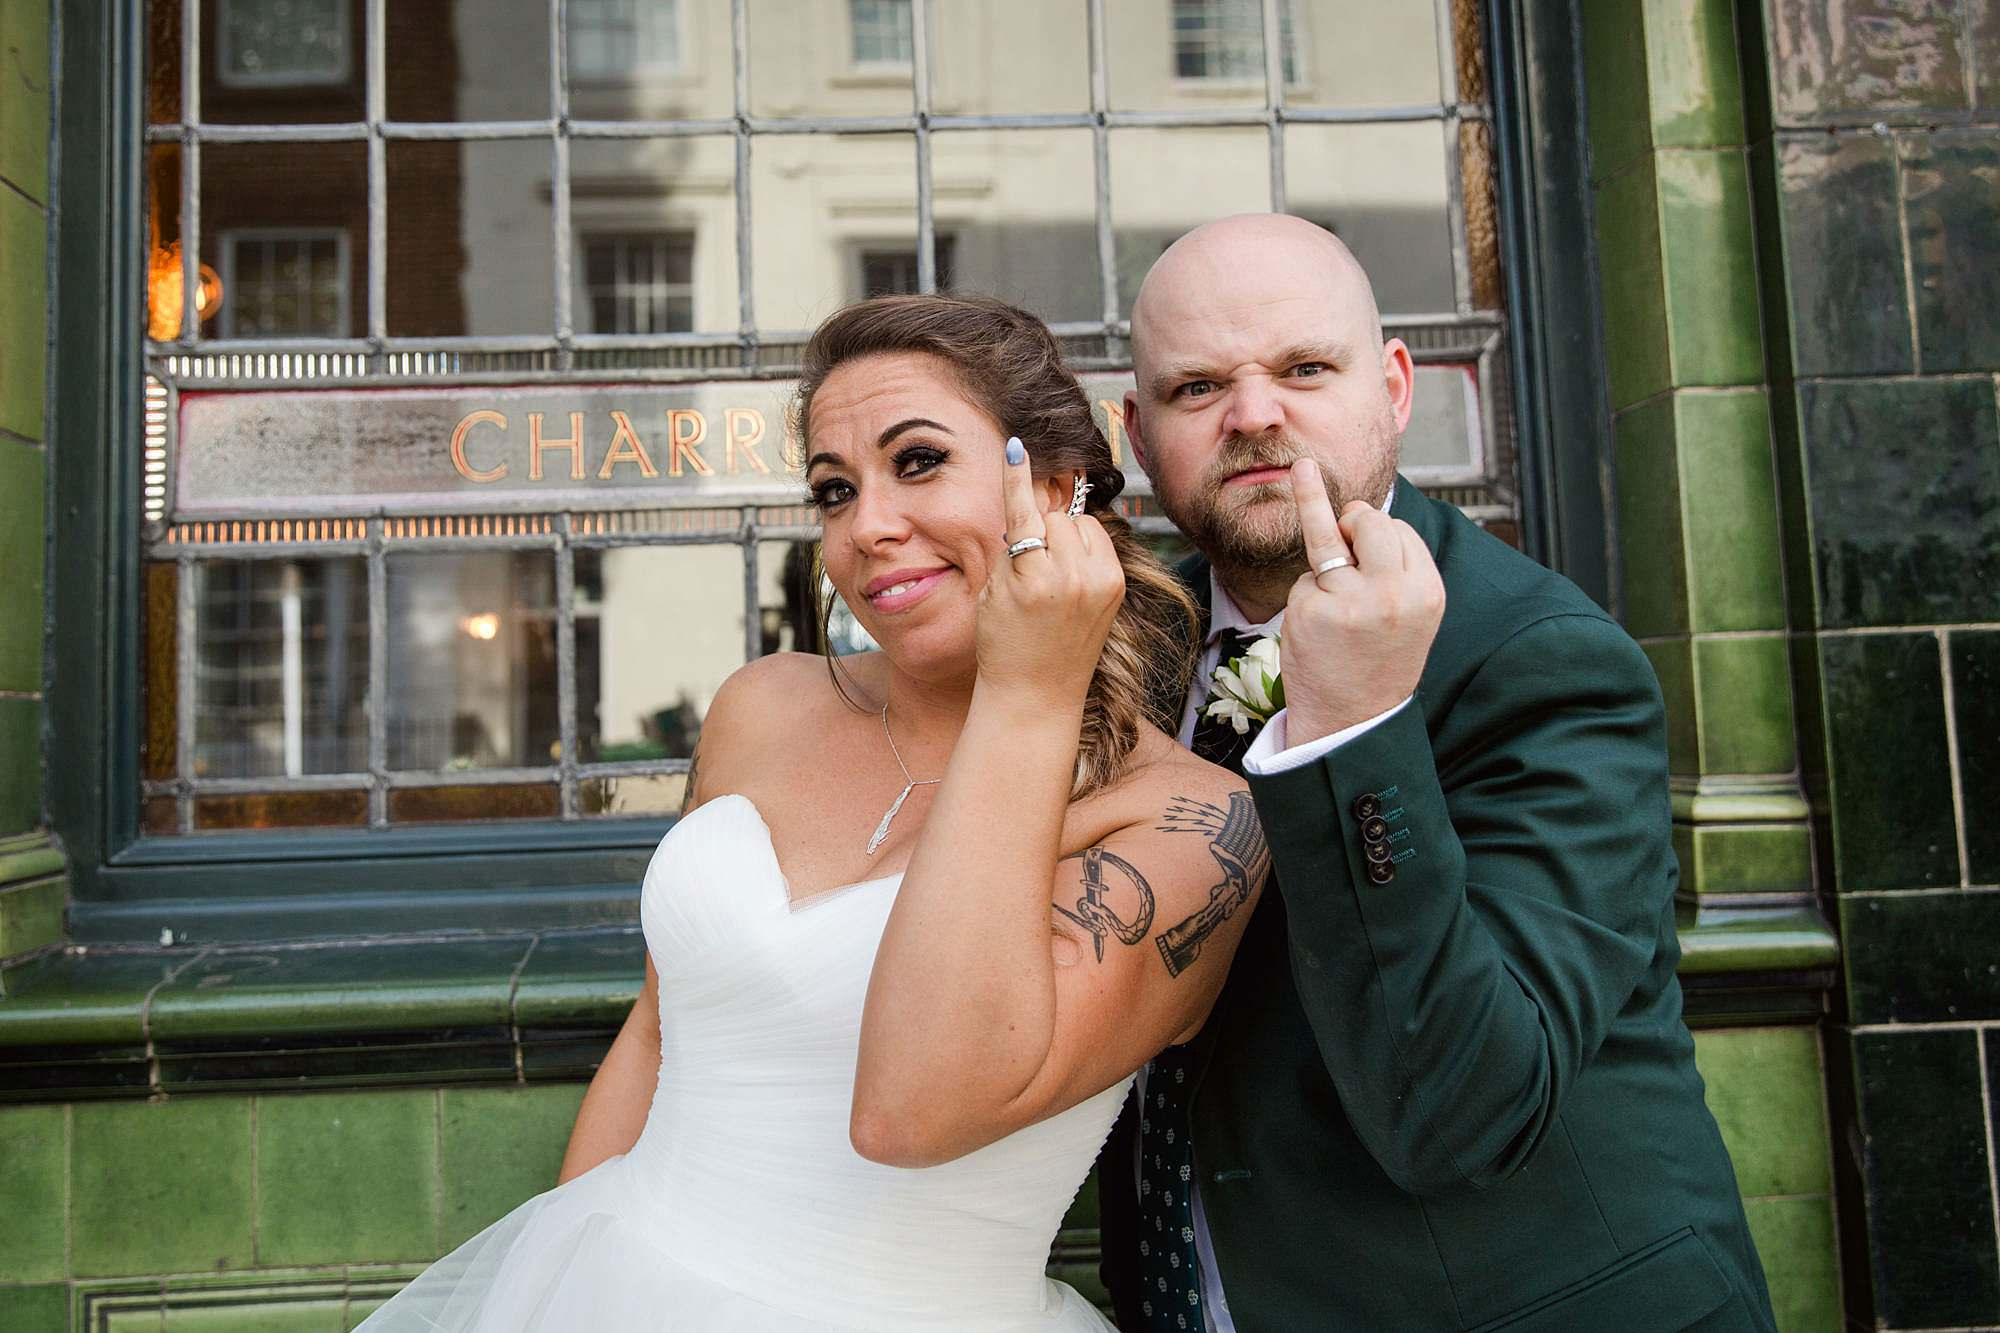 Prince albert camden wedding bride and groom show off wedding rings